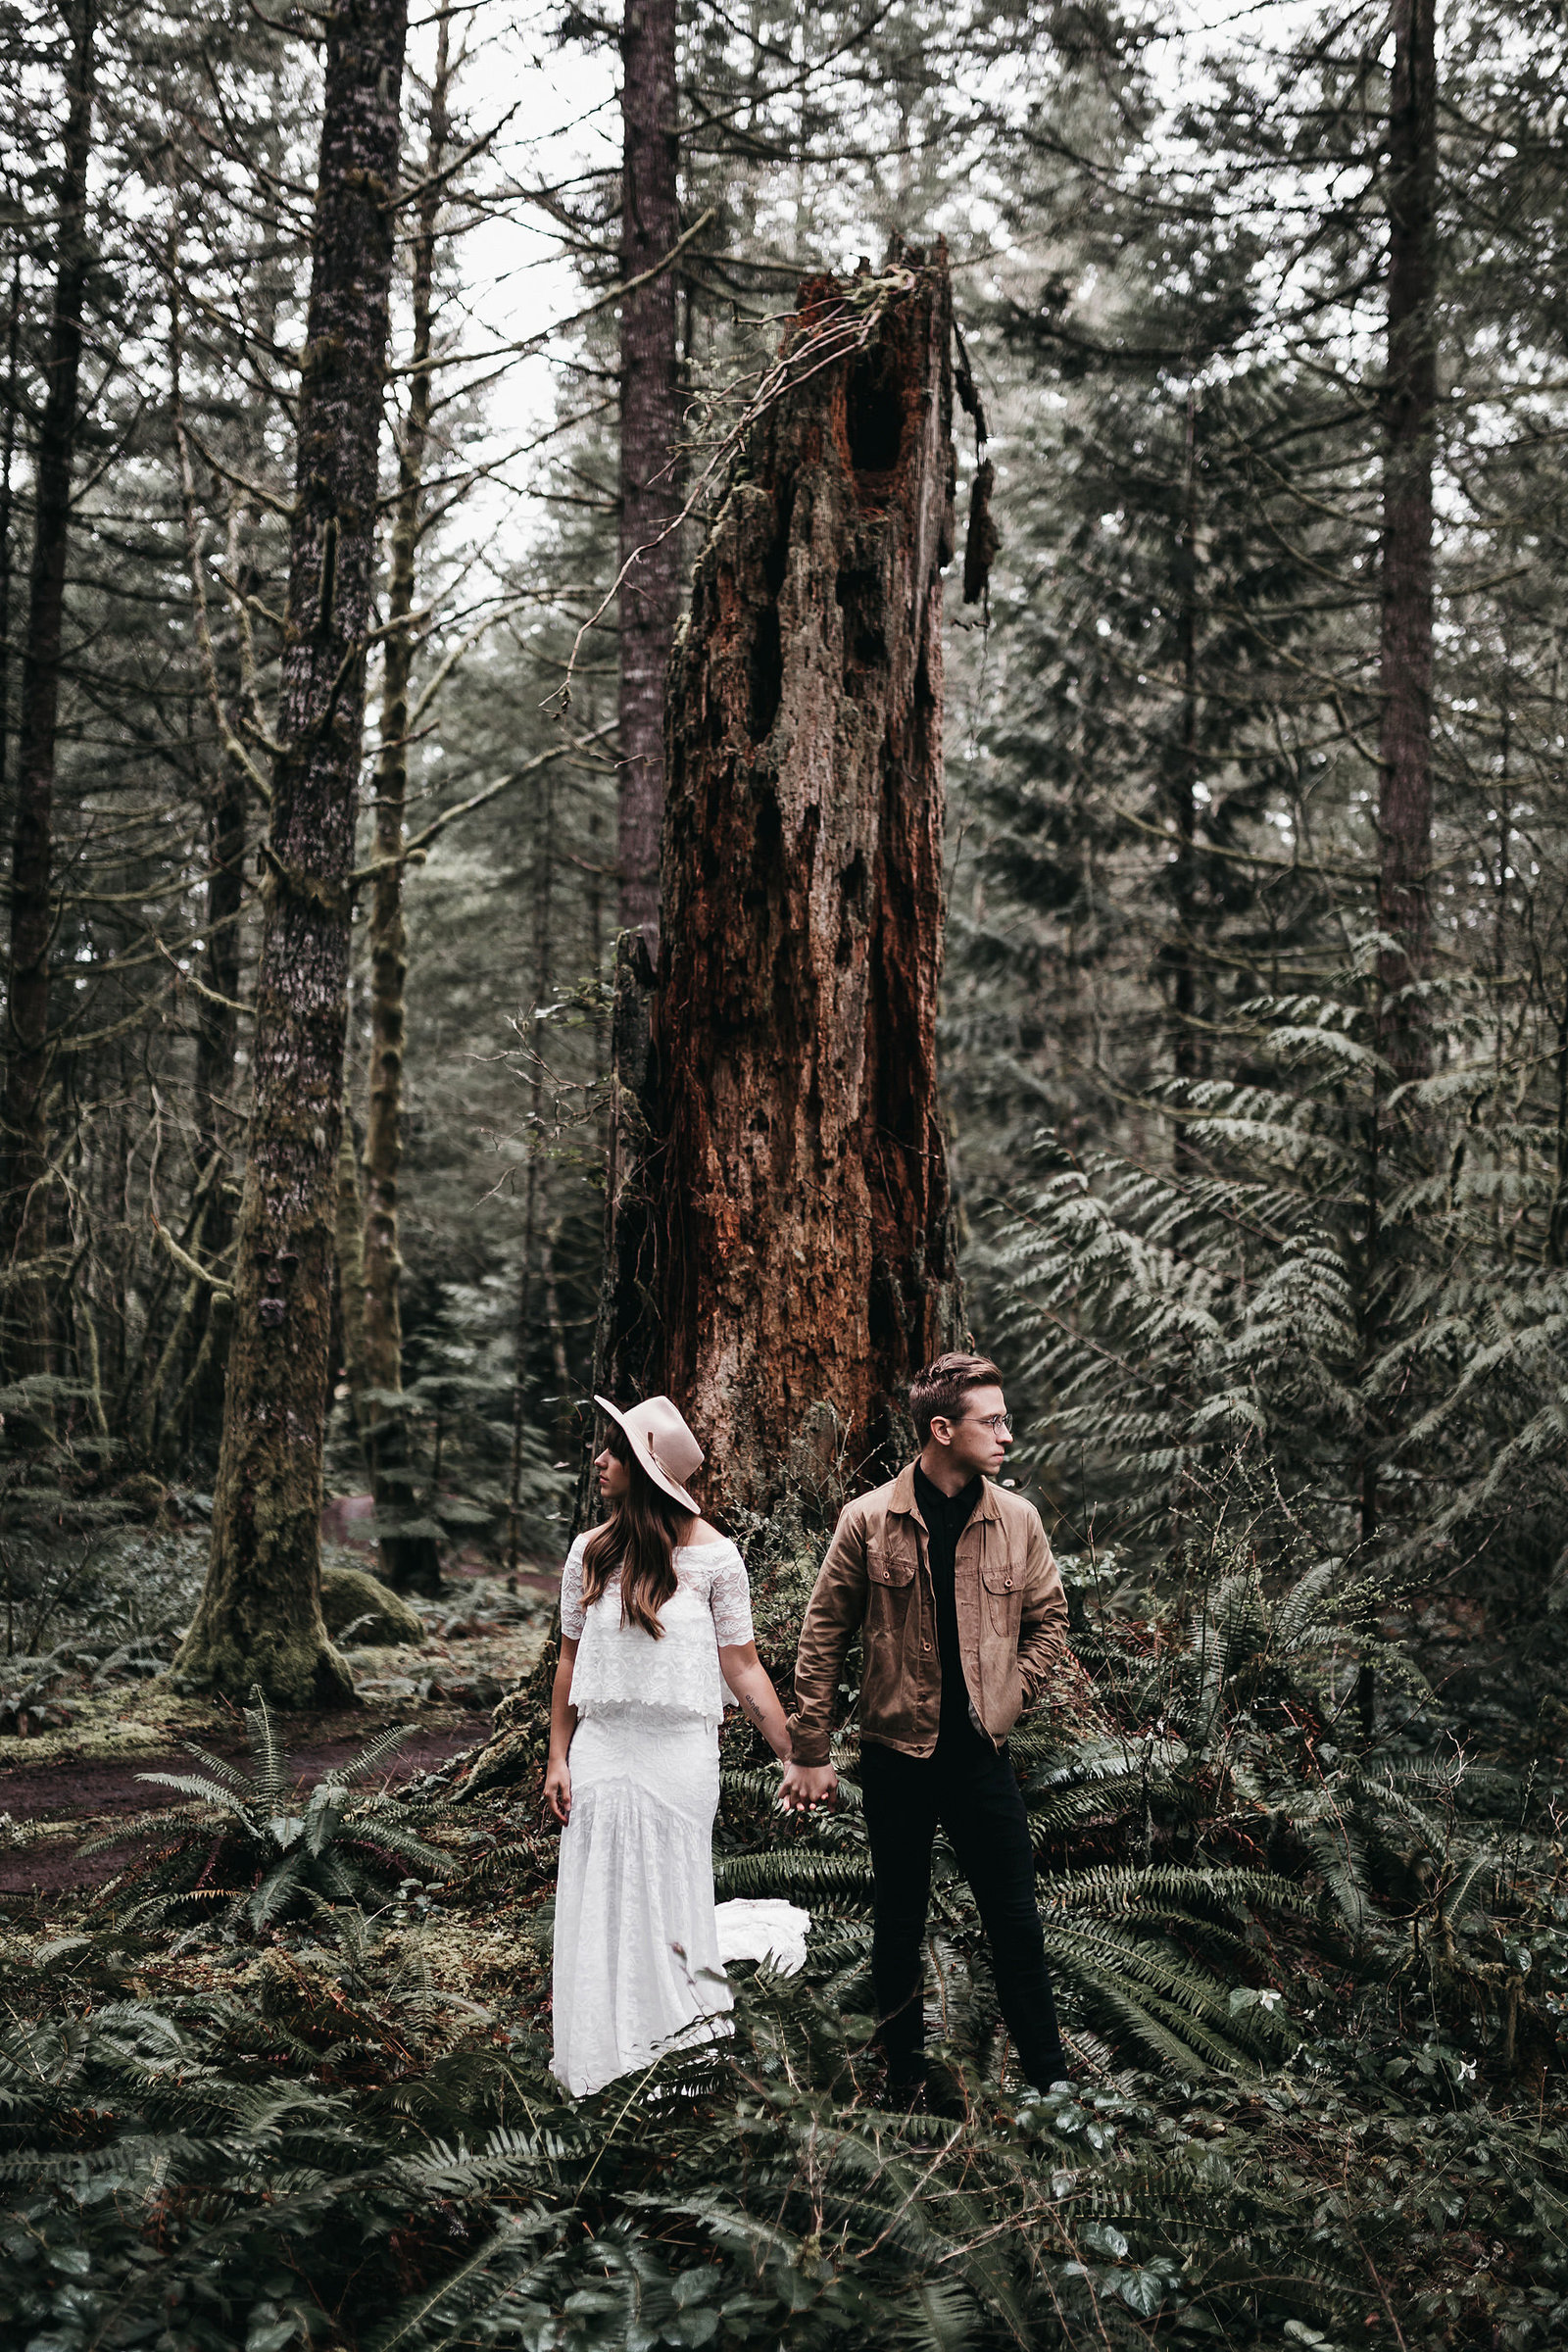 white-magazine-athena-camron-seattle-oregon-wedding-photography-woodlands-house-boho-elopement-inspiration-52